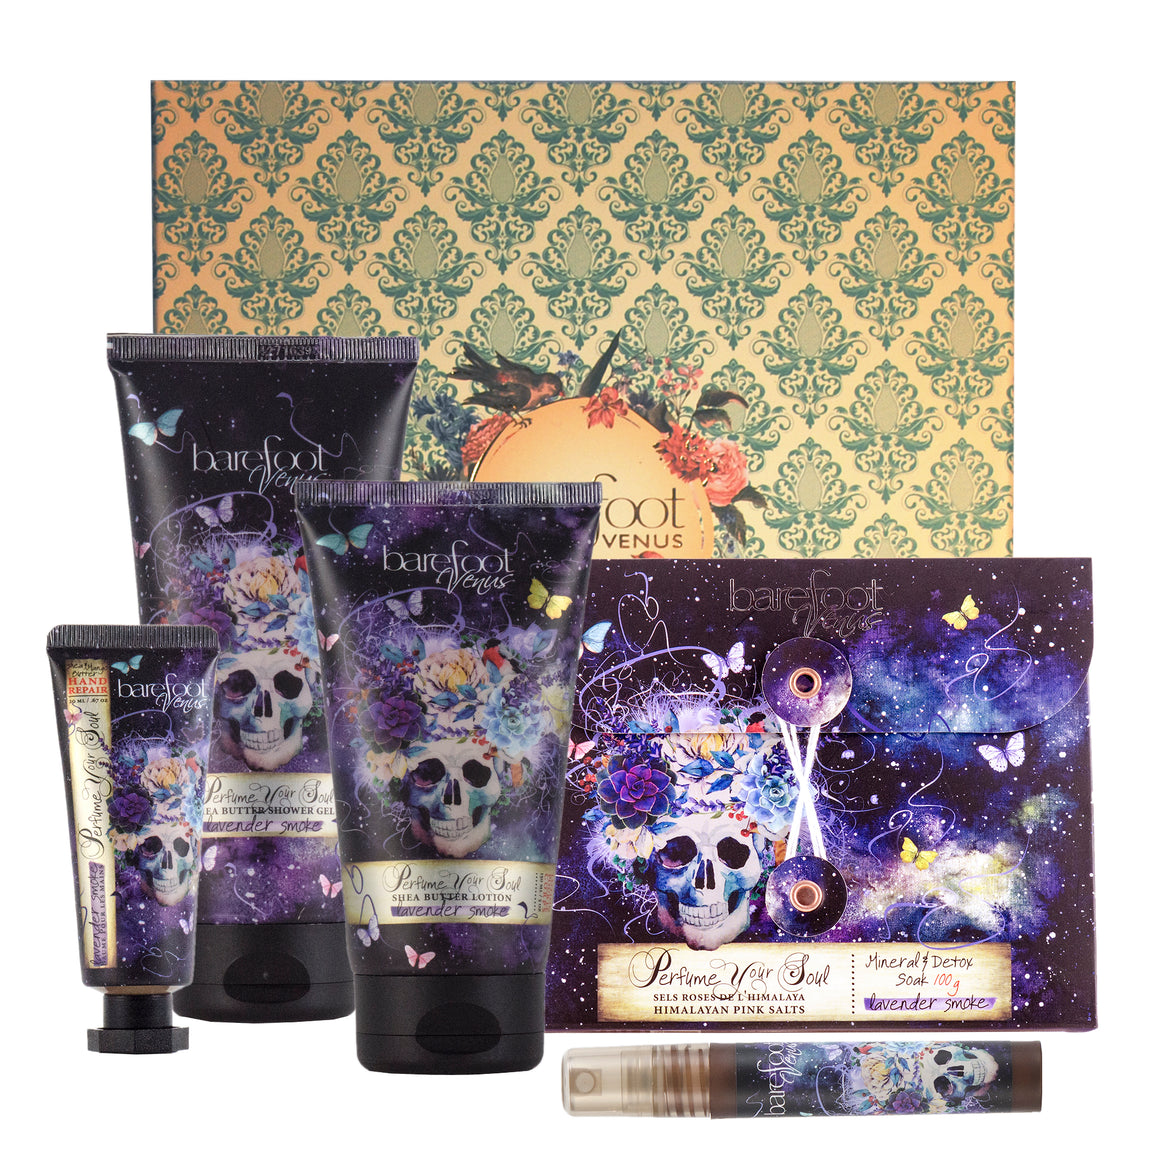 Lavender Smoke Gift Set (Value $59.50)